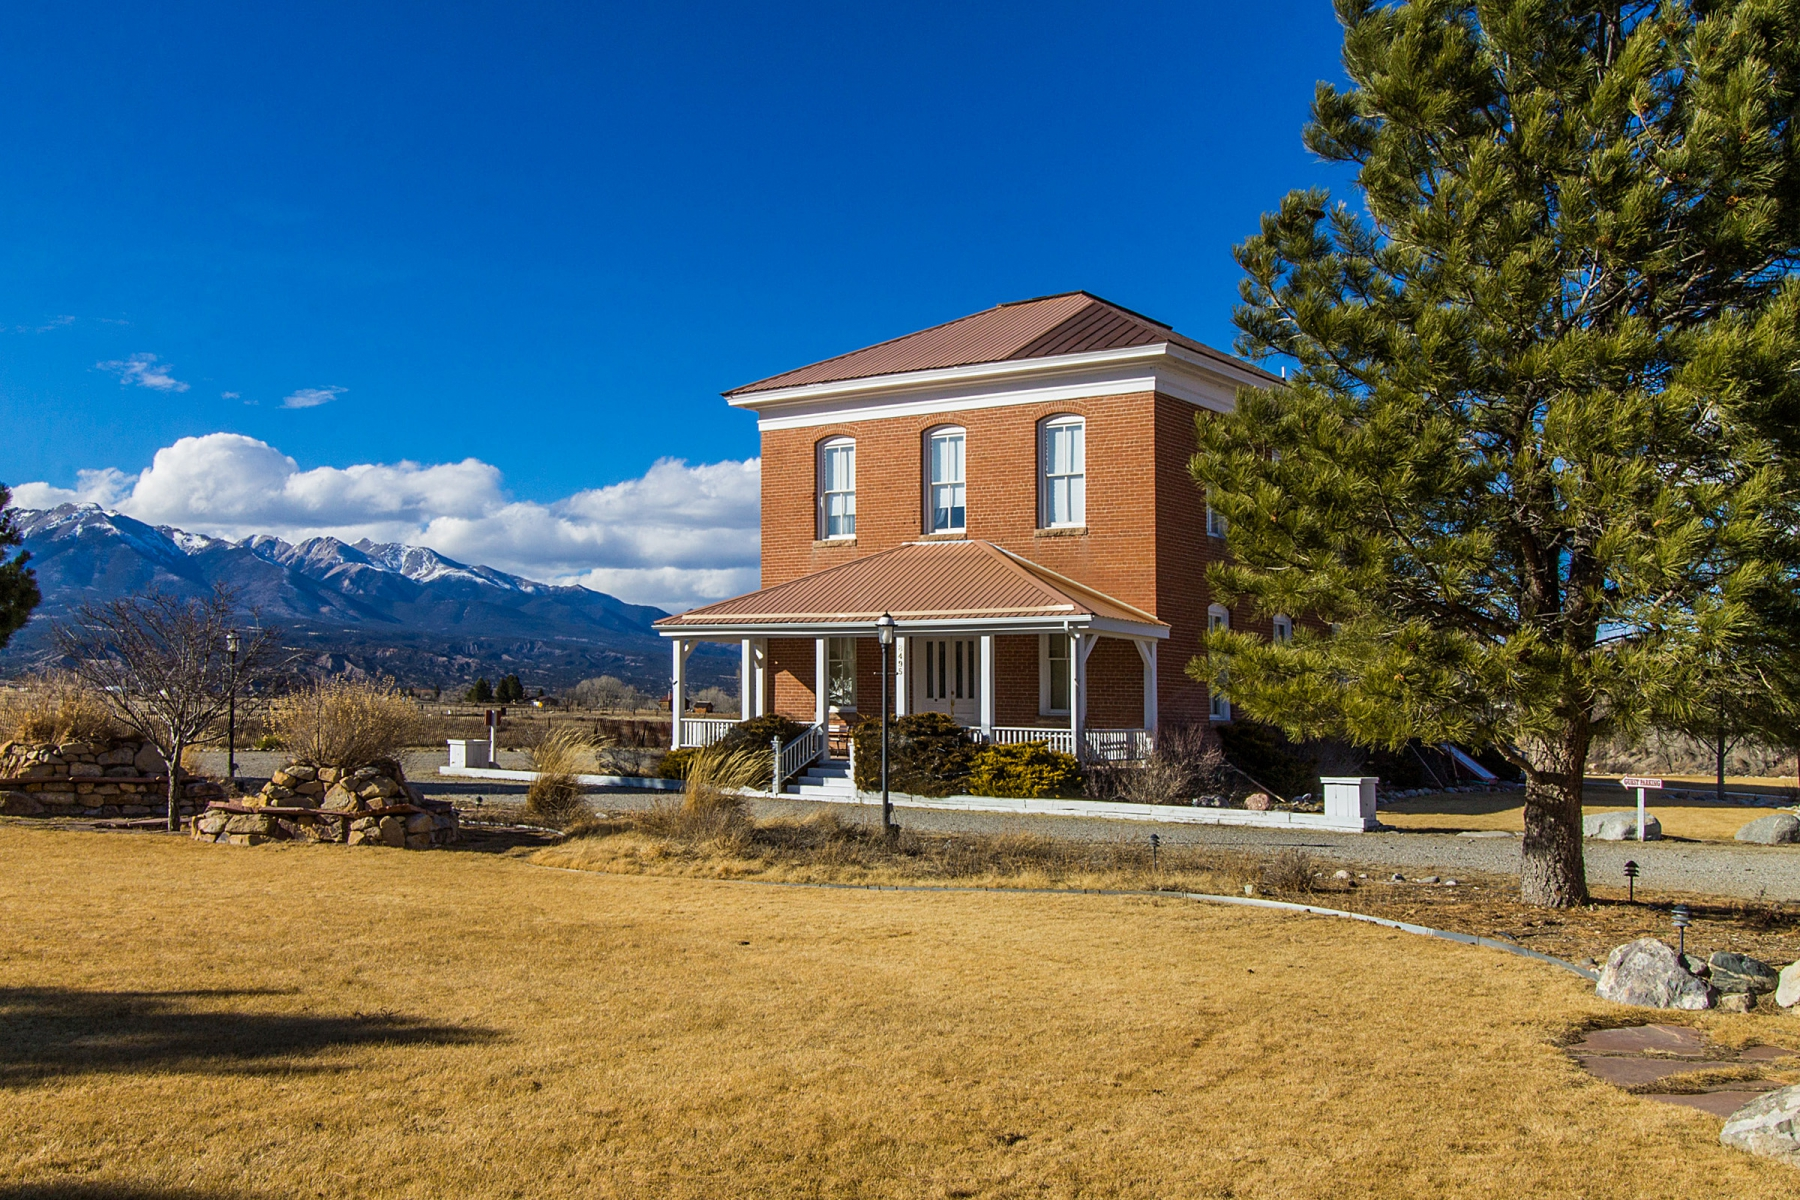 for Sale at Charming Historic Structure On Five Acres 8495 CR 160 Salida, Colorado 81201 United States